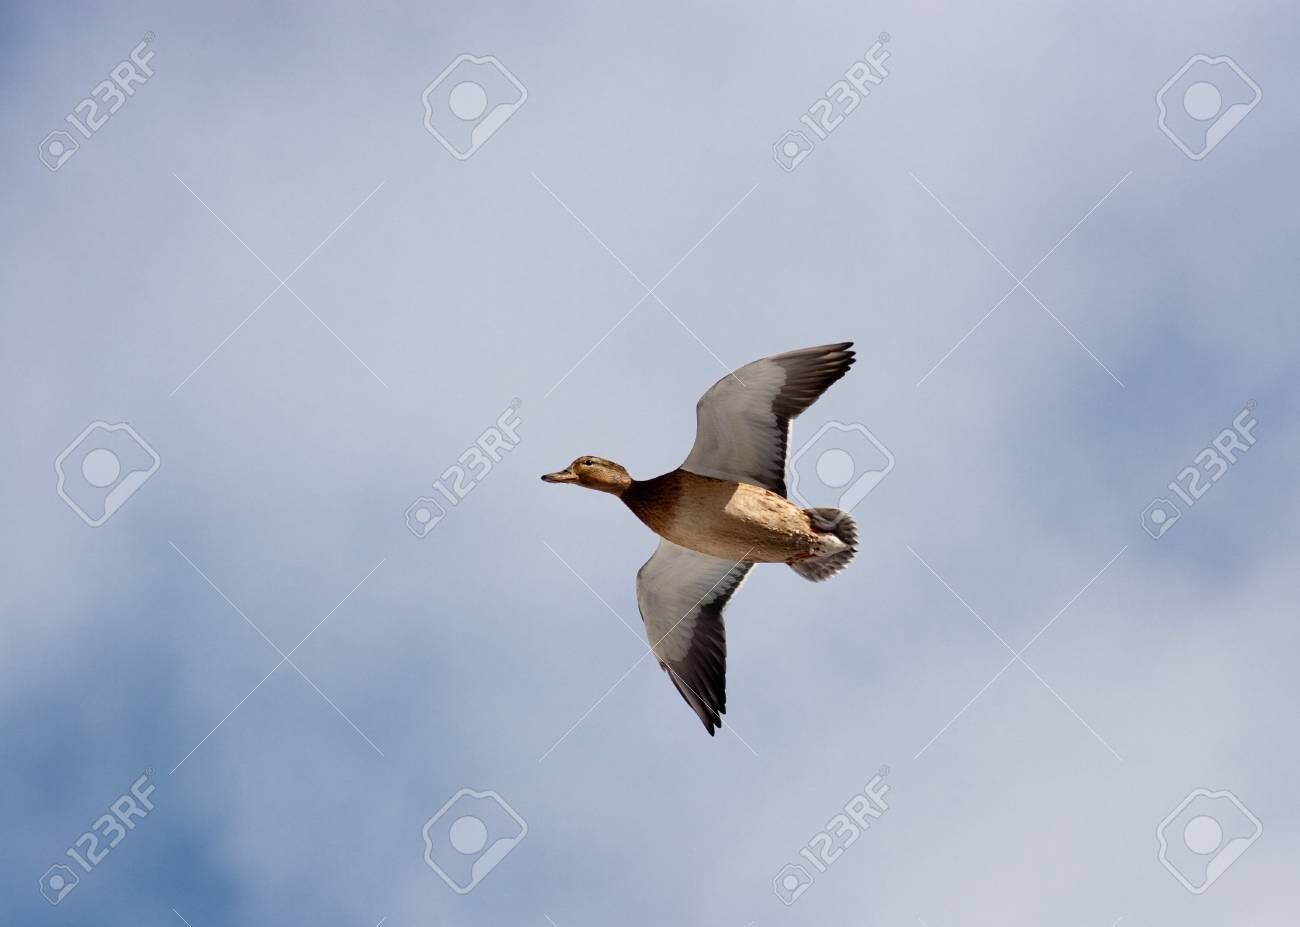 In the sky the wild duck flies. A short distance for a shot. Stock Photo - 4574121